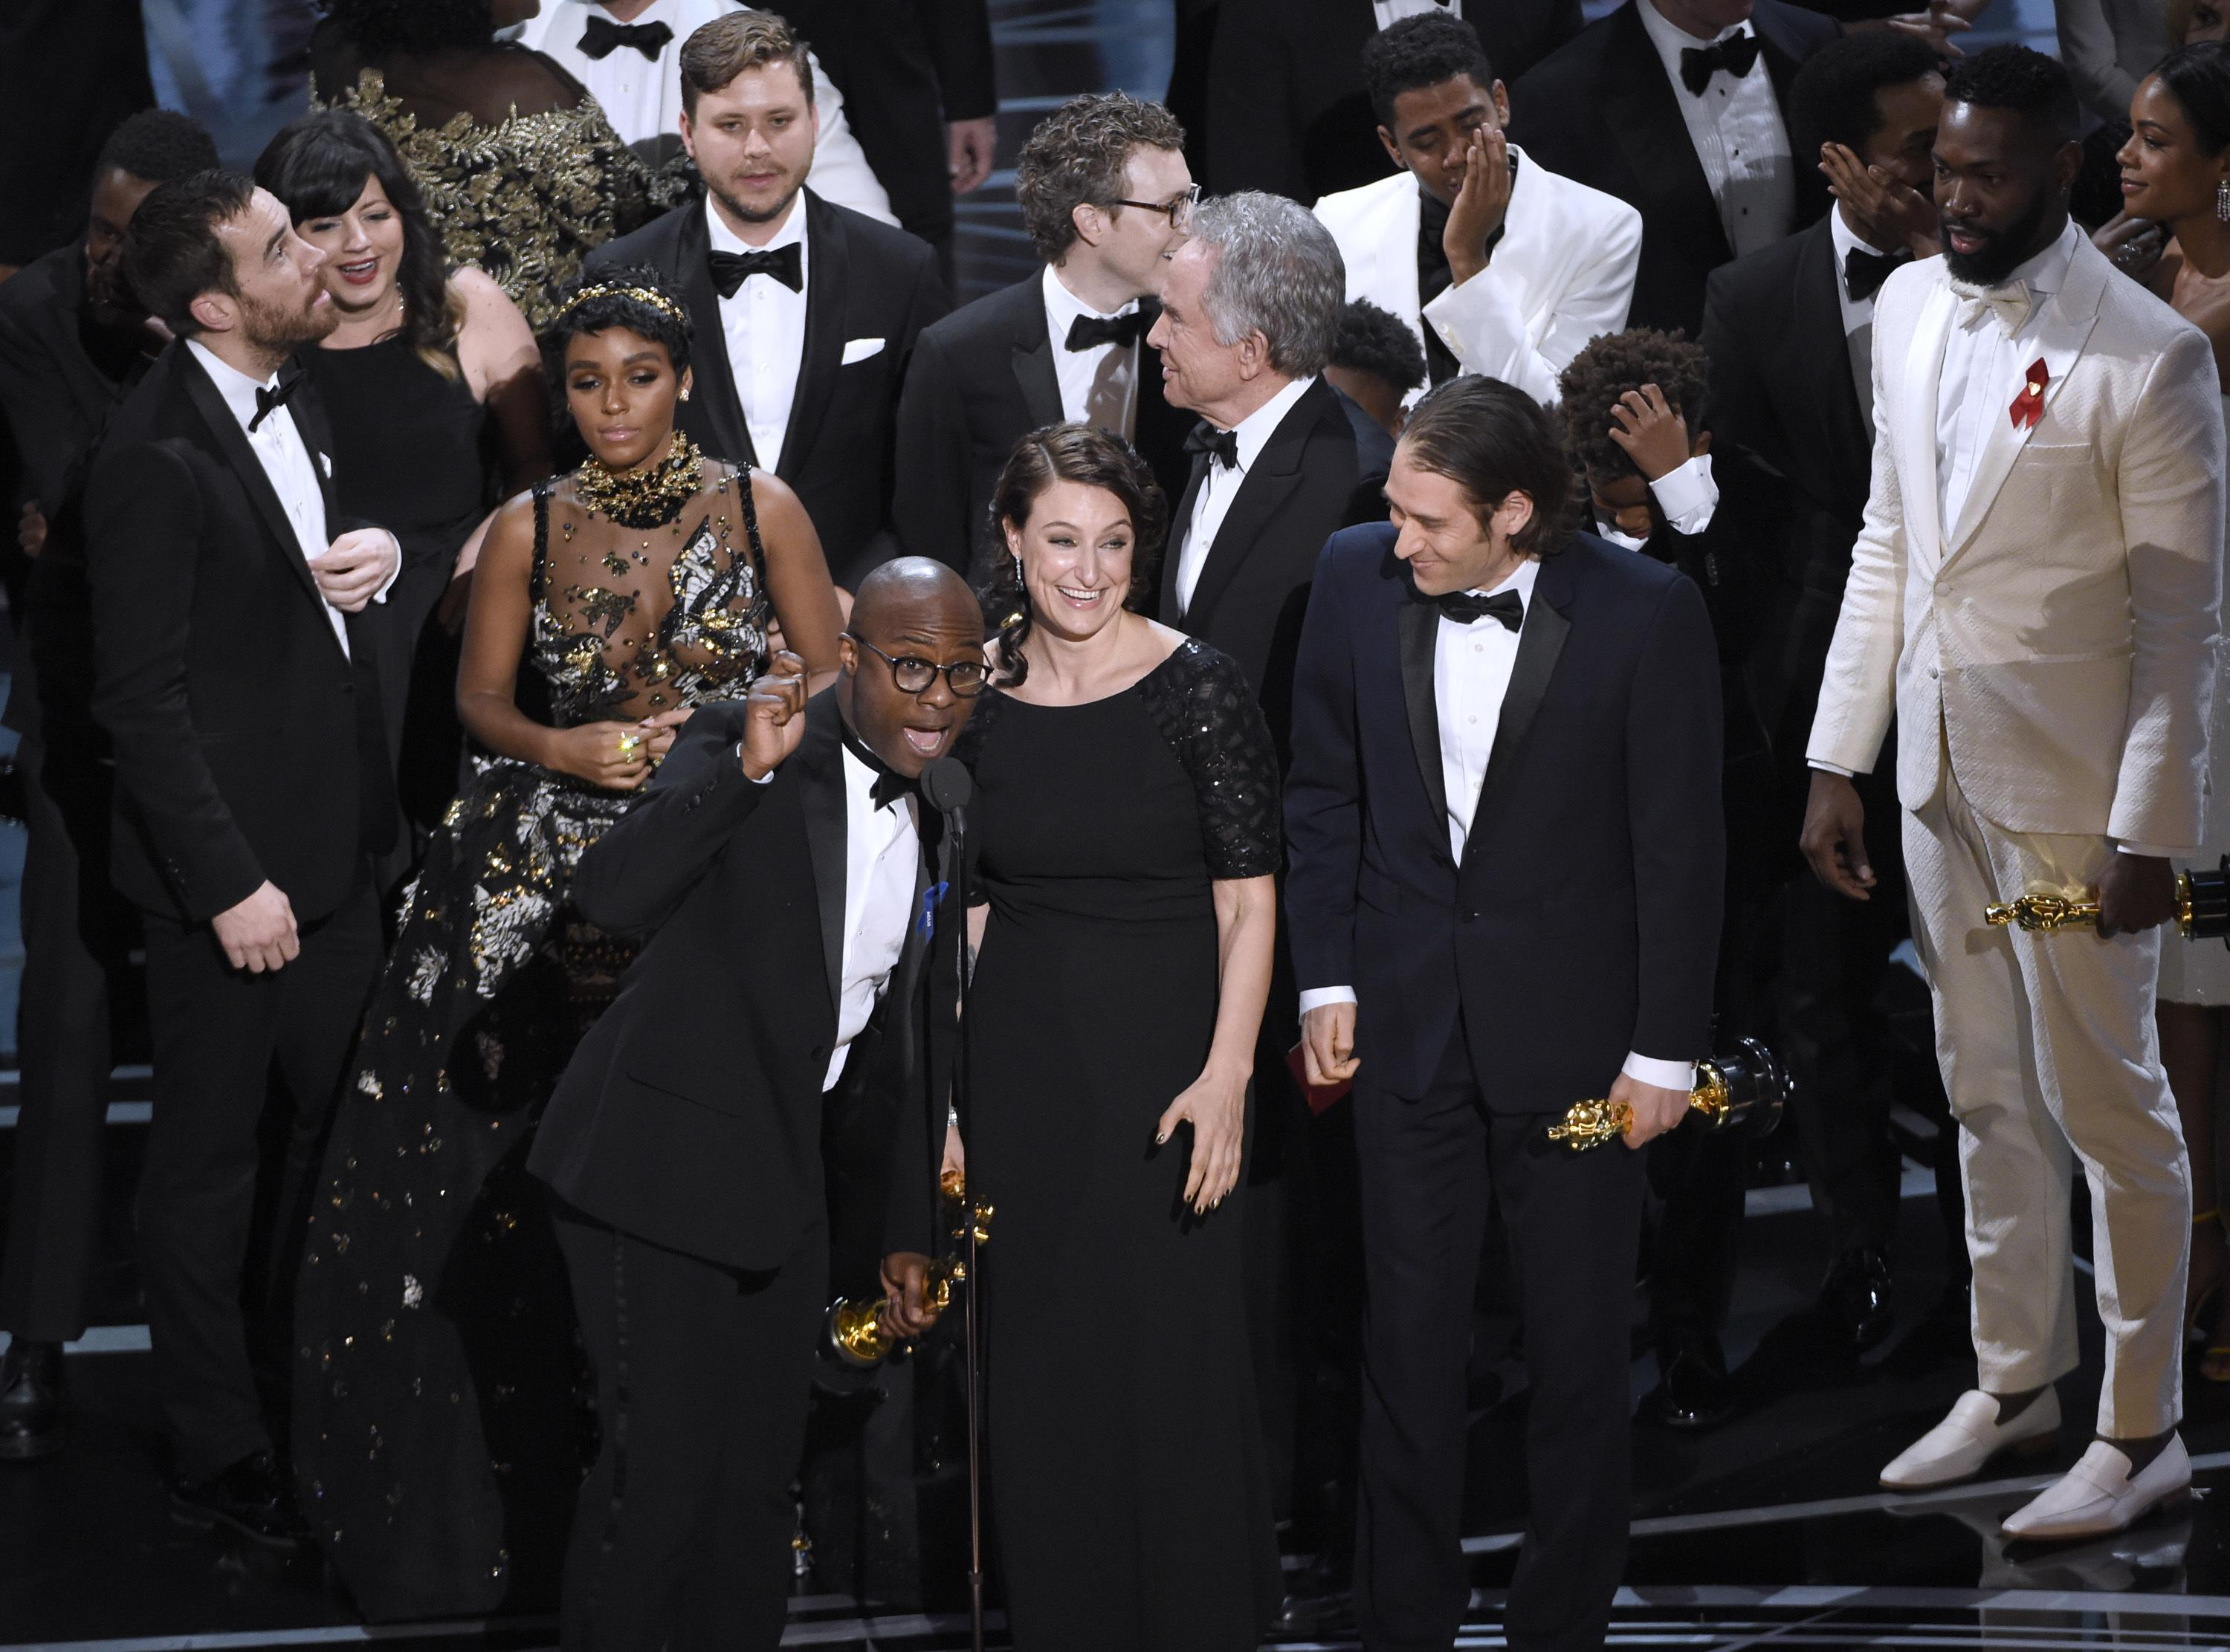 Moonlight' eclipses 'La La Land' for best picture at Academy Awards